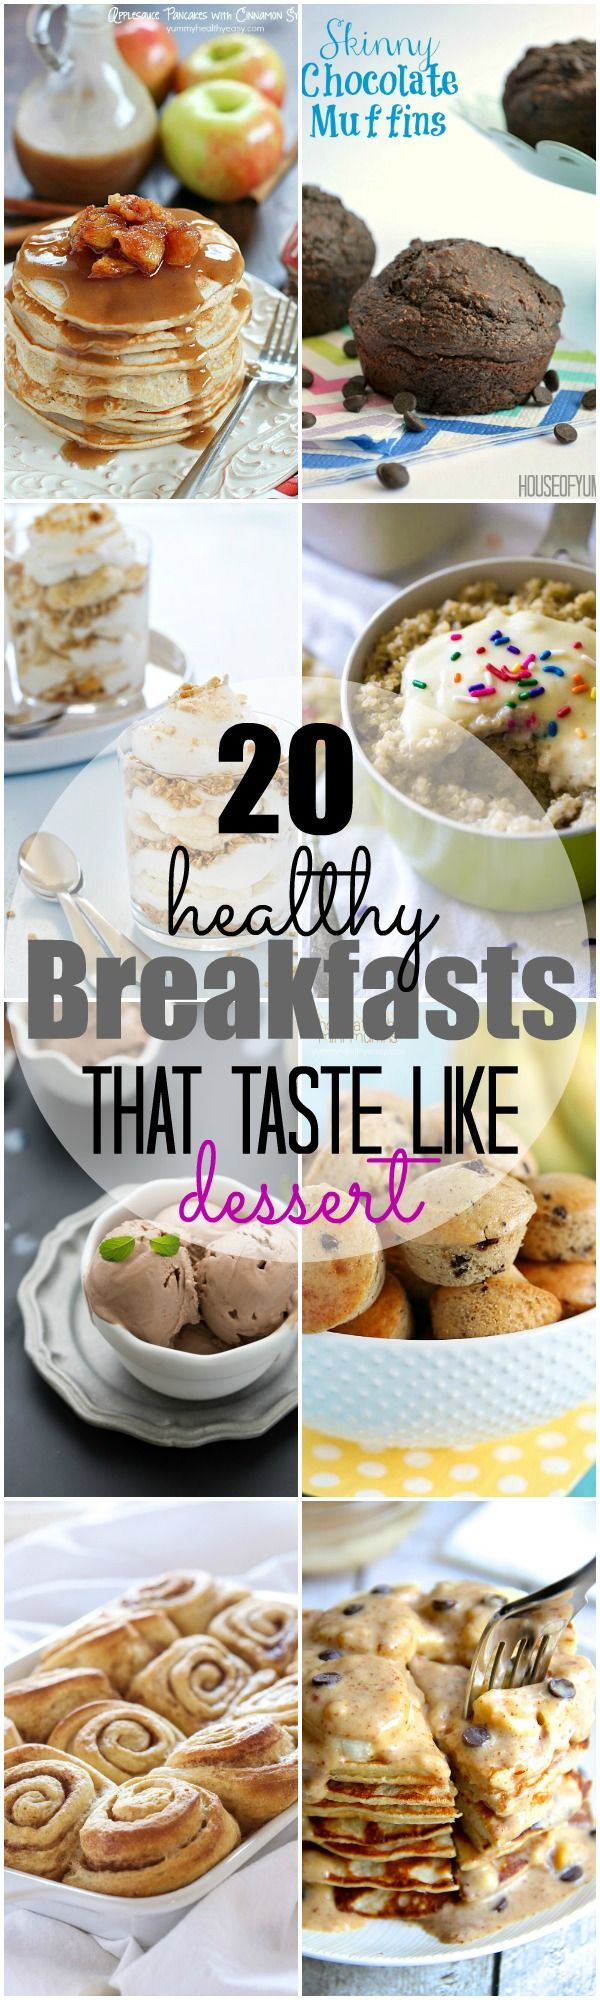 20 Healthy Breakfasts that taste like dessert! The best healthy breakfast recipes that will satisfy your sweet tooth at the same time!